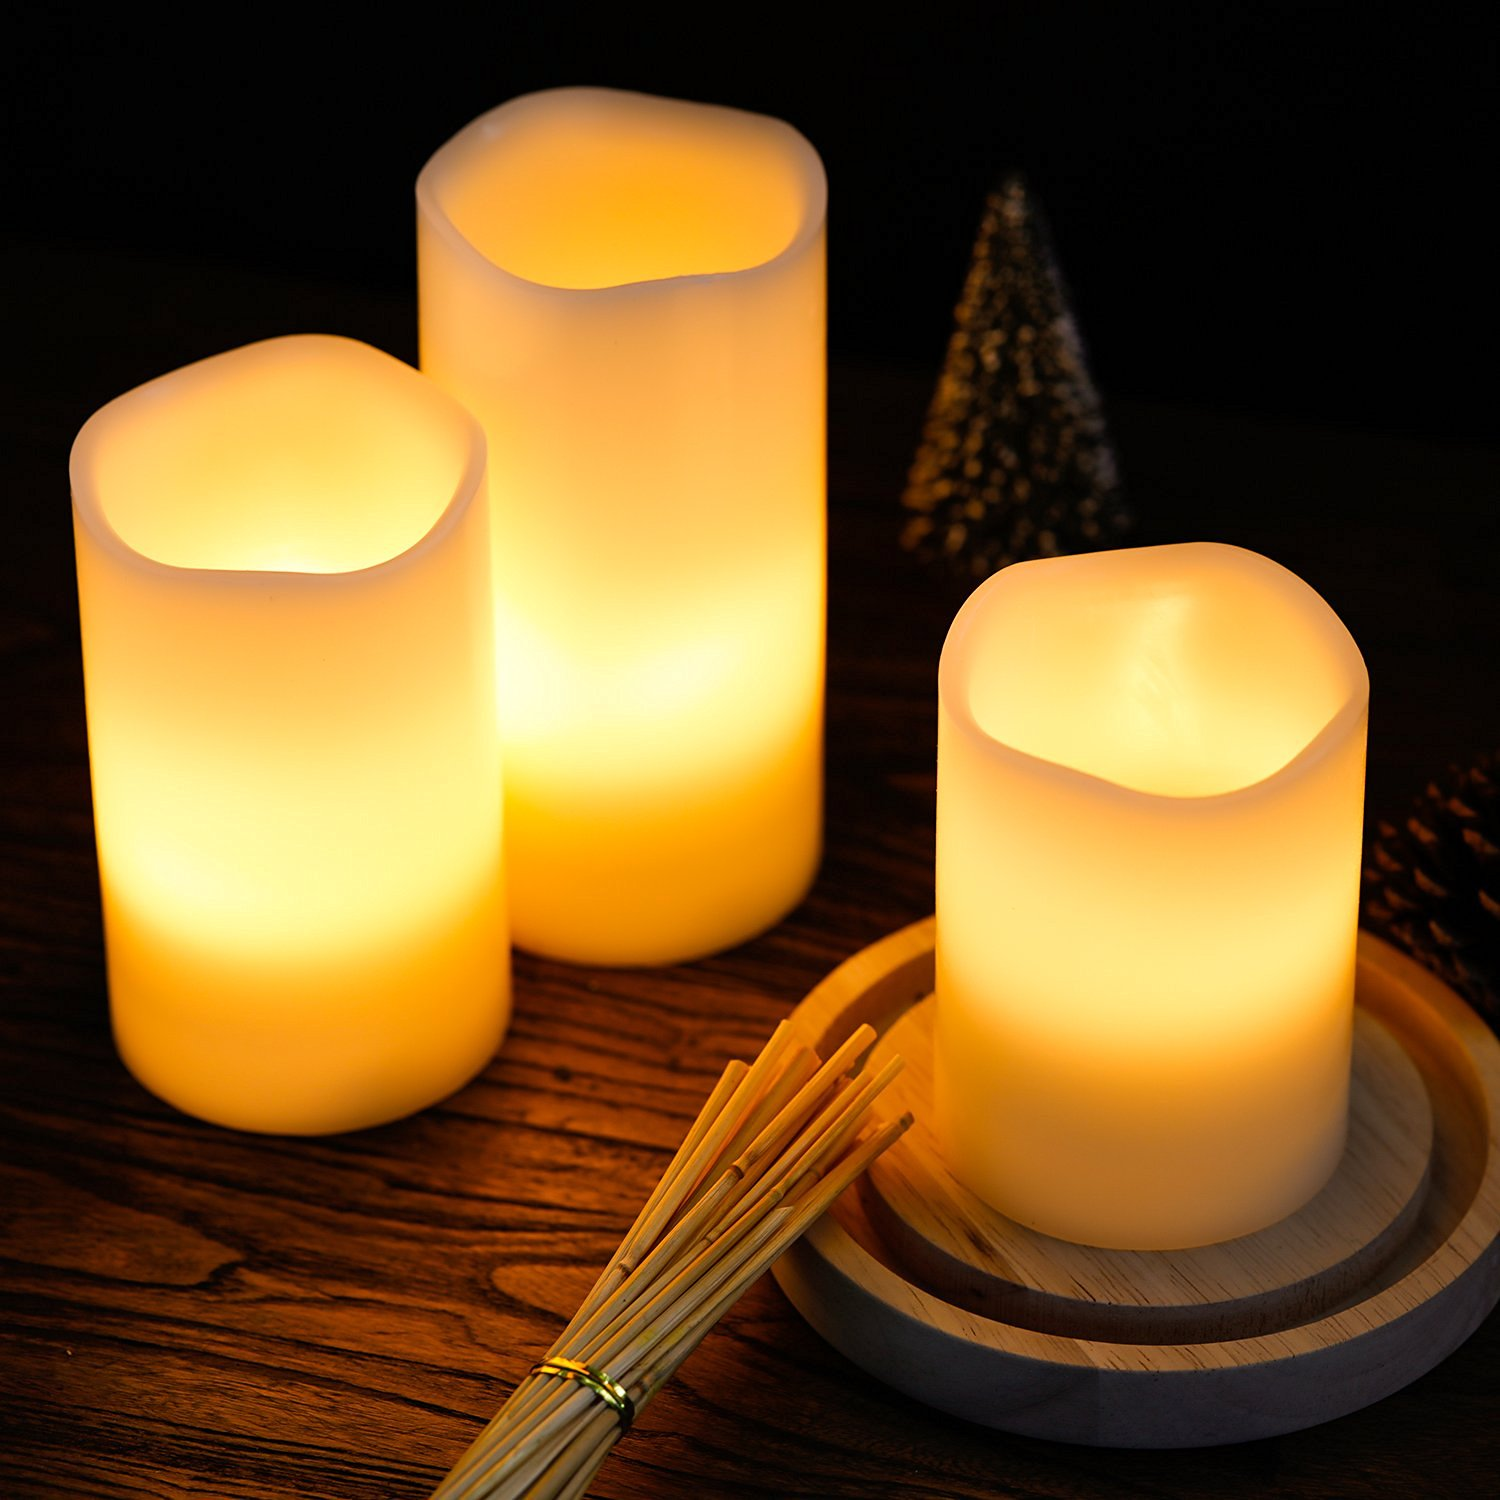 kohree real wax flameless candles battery operated led candles lights remote control candles with timer pack of 3 walmartcom - Flameless Candles With Timer